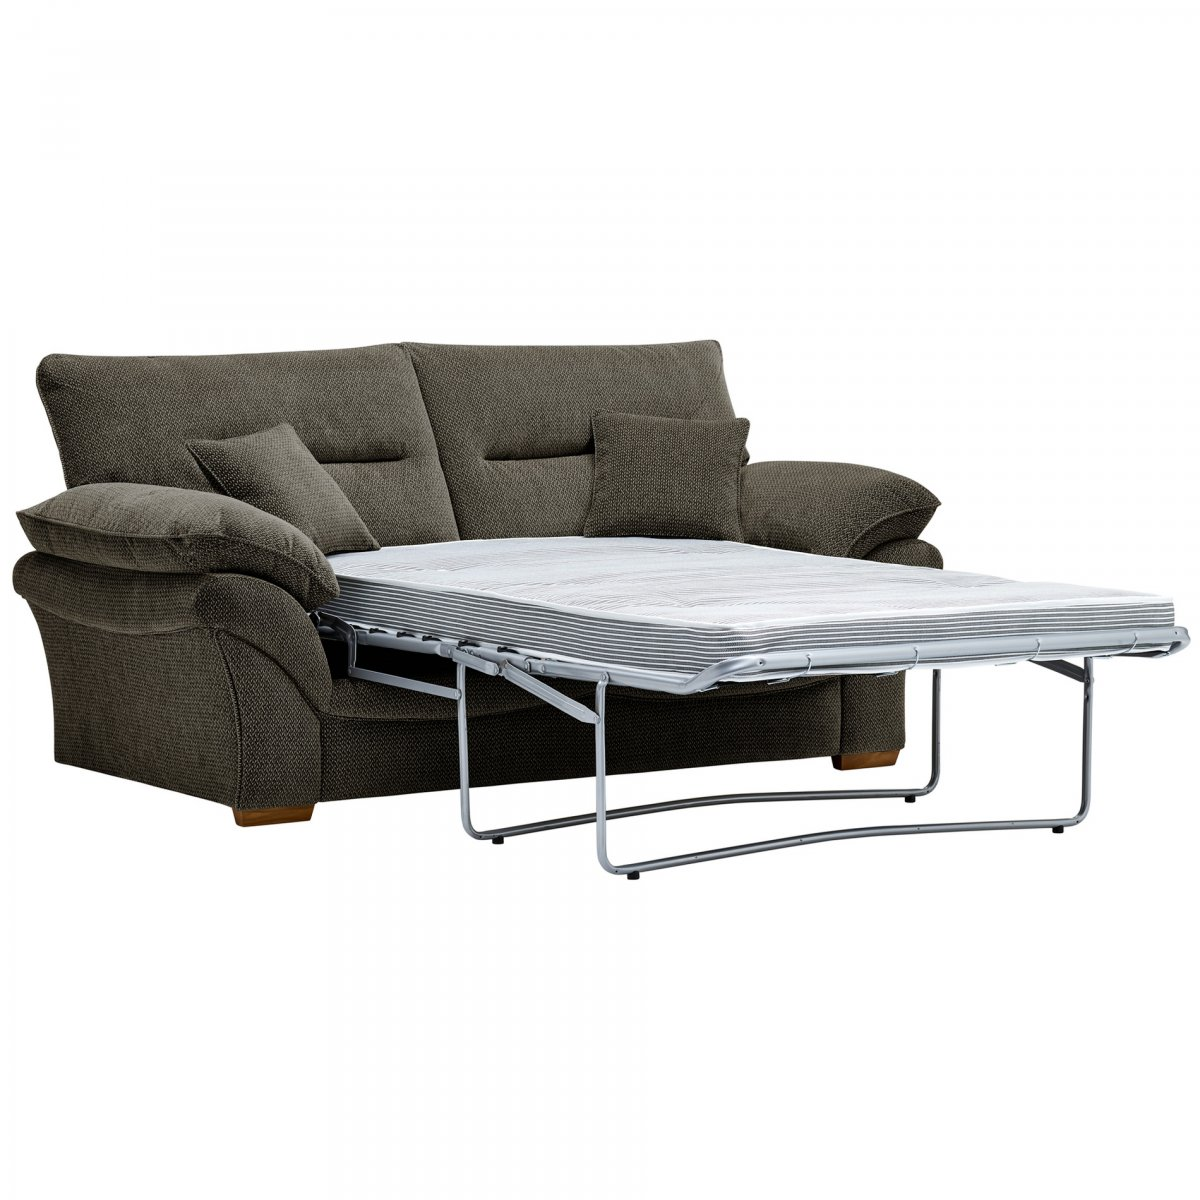 Chloe 2 seater sofa bed with deluxe mattress duck egg for Sofa bed 4 in 1